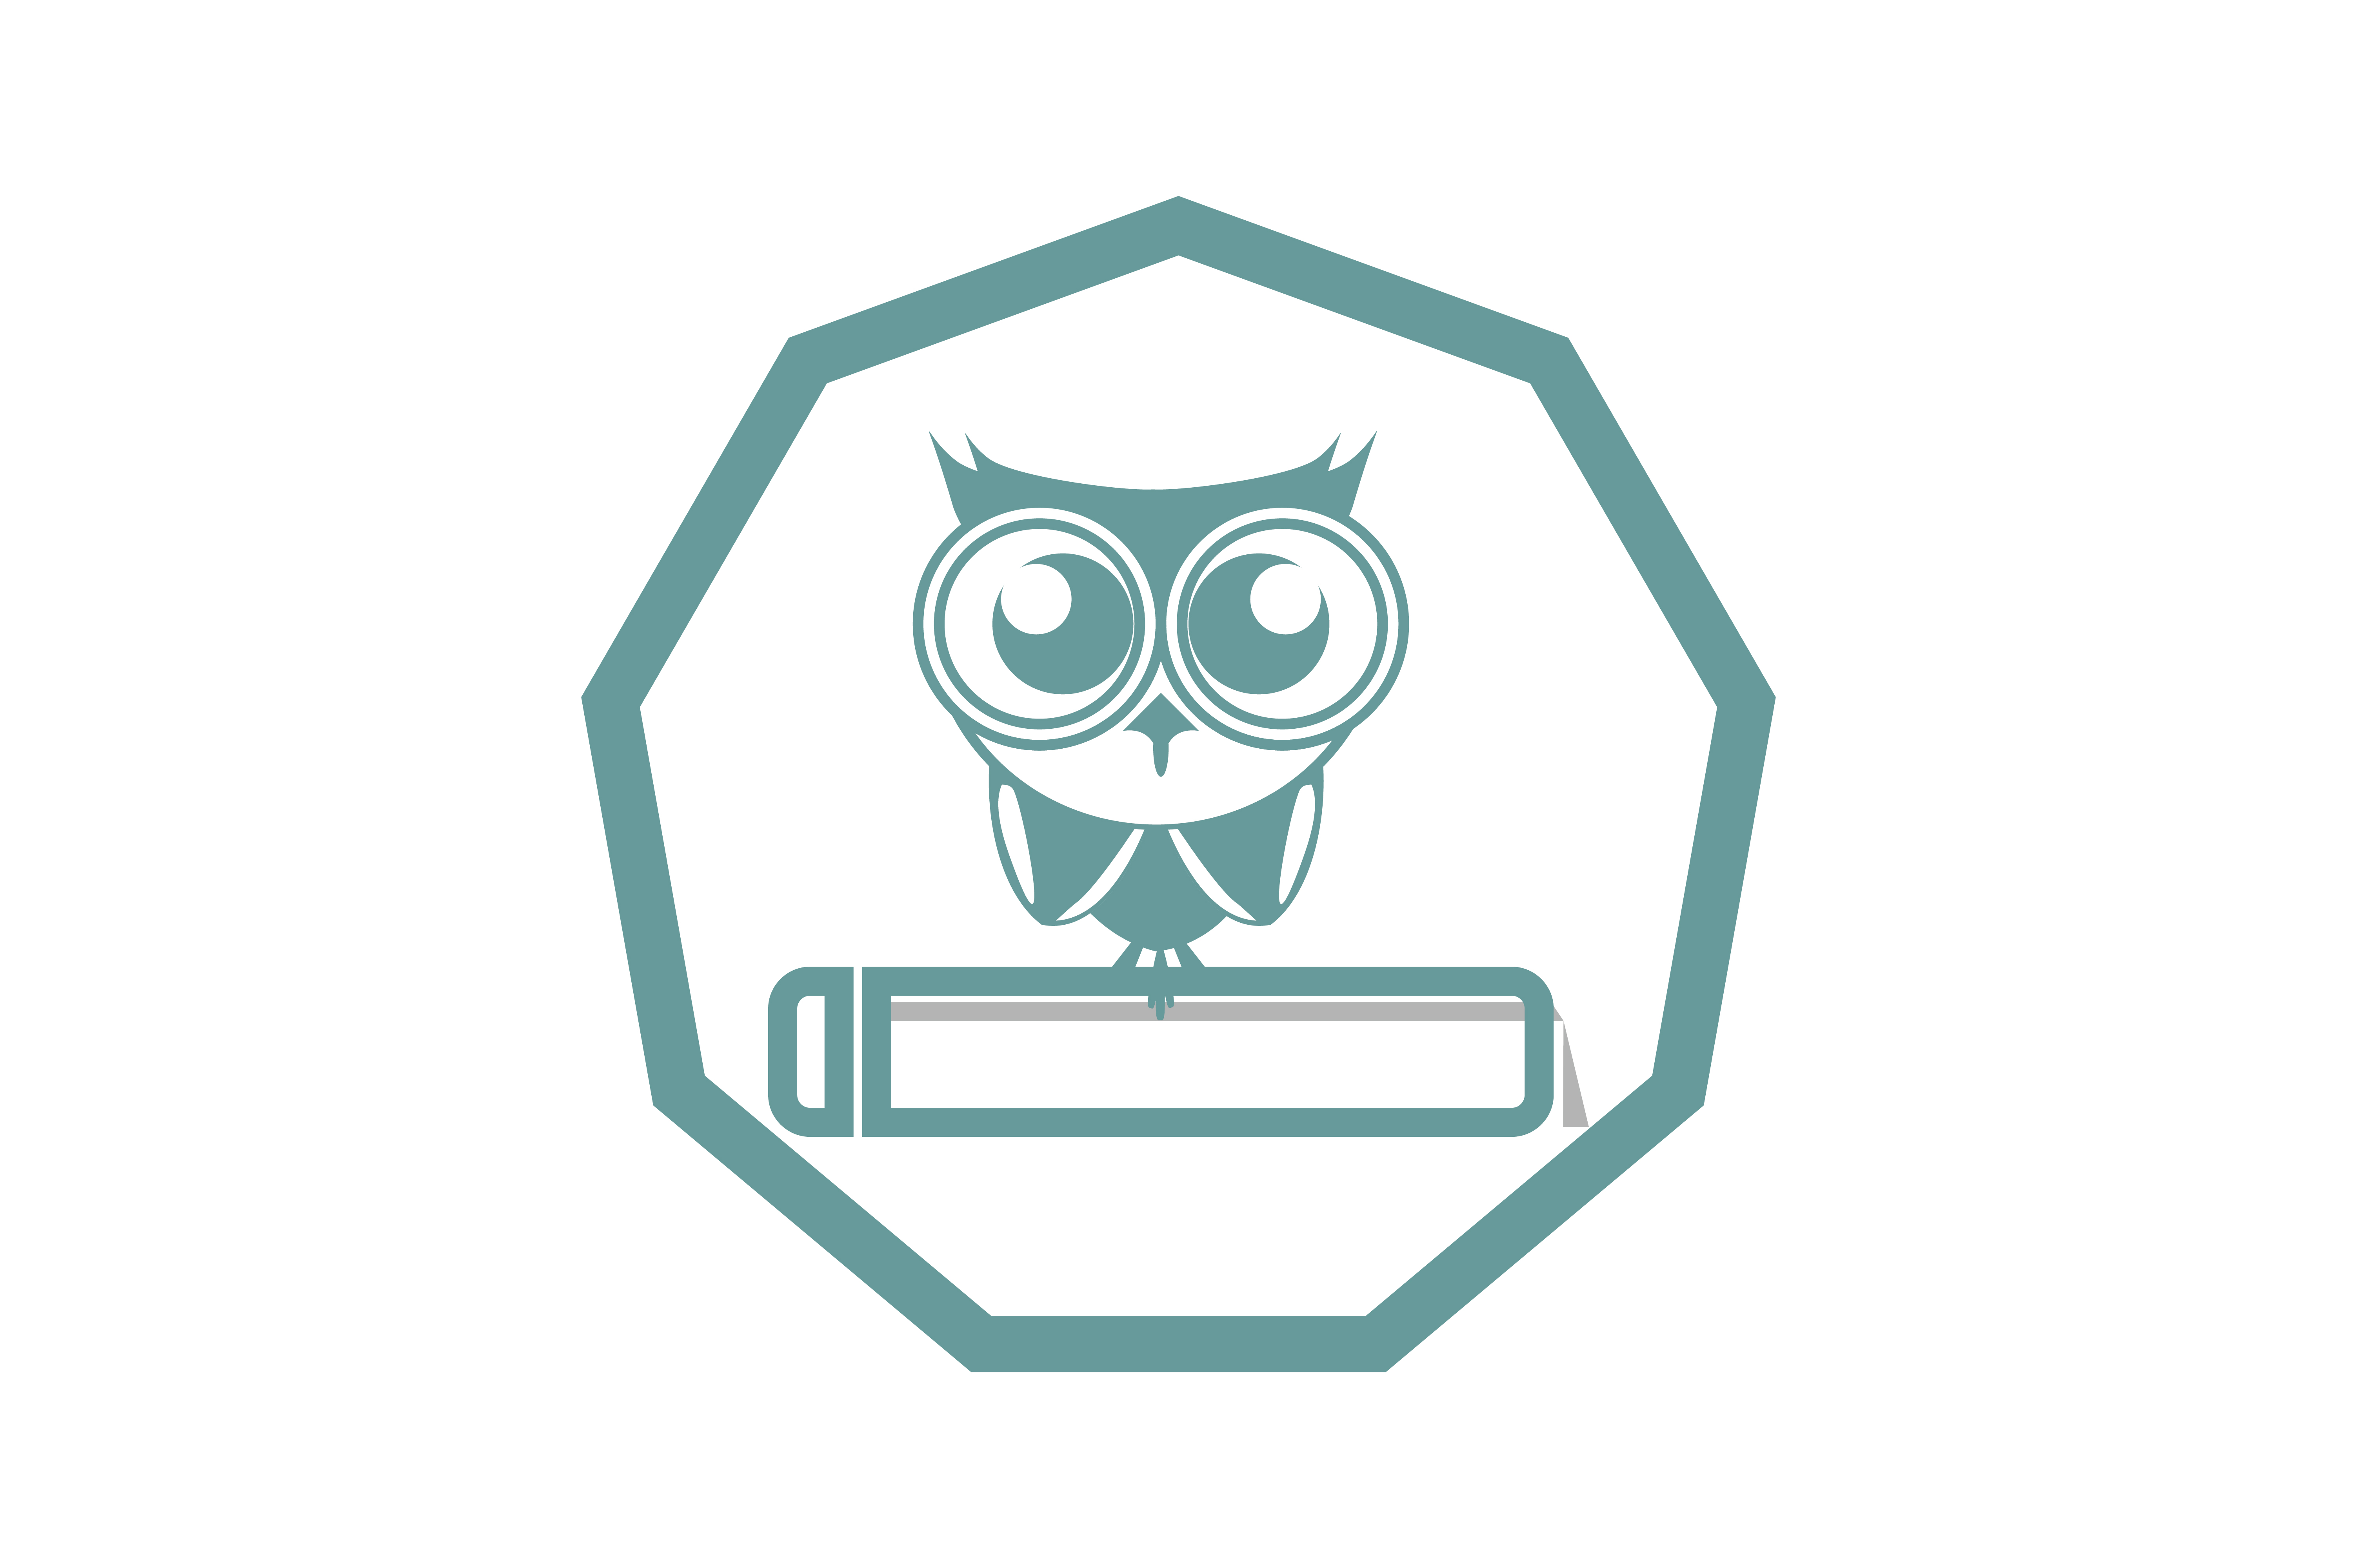 Download Free The Owl And Book Icon Graphic By Yuhana Purwanti Creative Fabrica for Cricut Explore, Silhouette and other cutting machines.